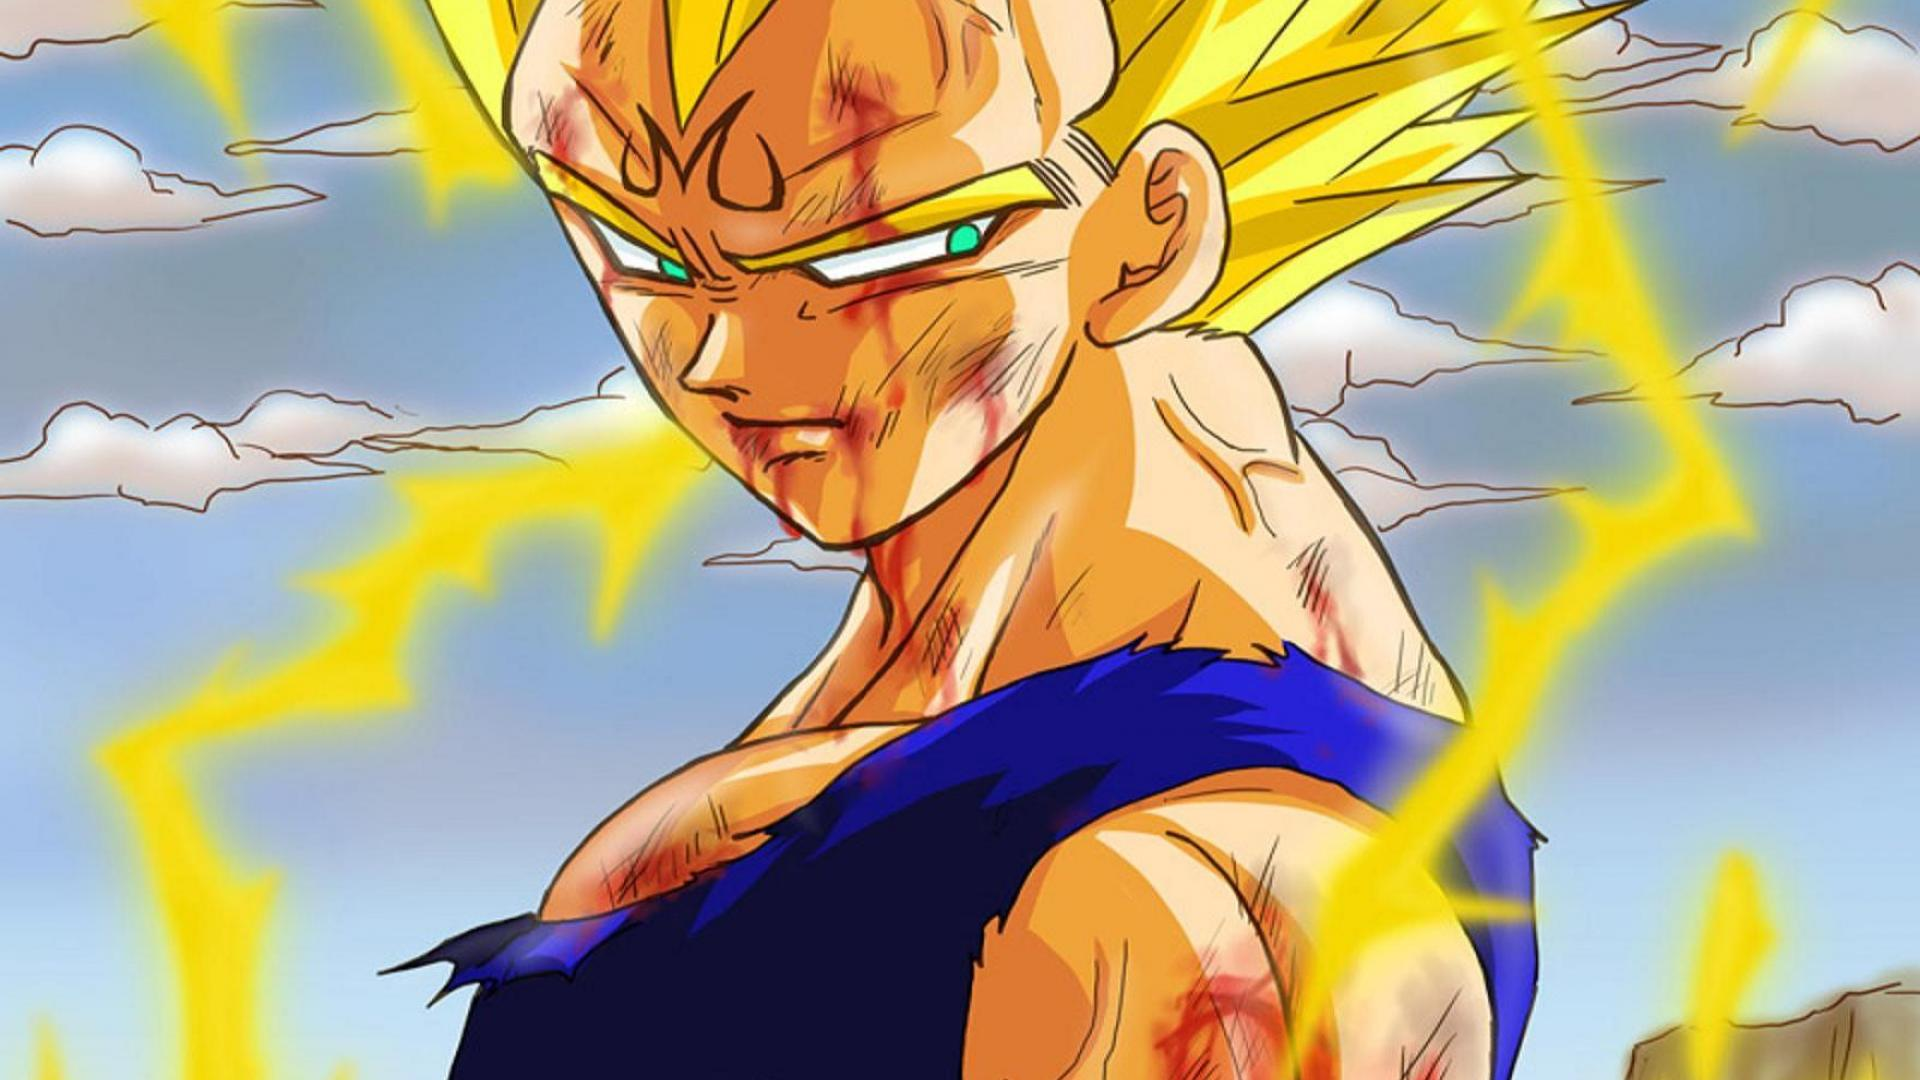 Majin Vegeta Wallpaper 81667 HQ Desktop Wallpapers 1920x1080